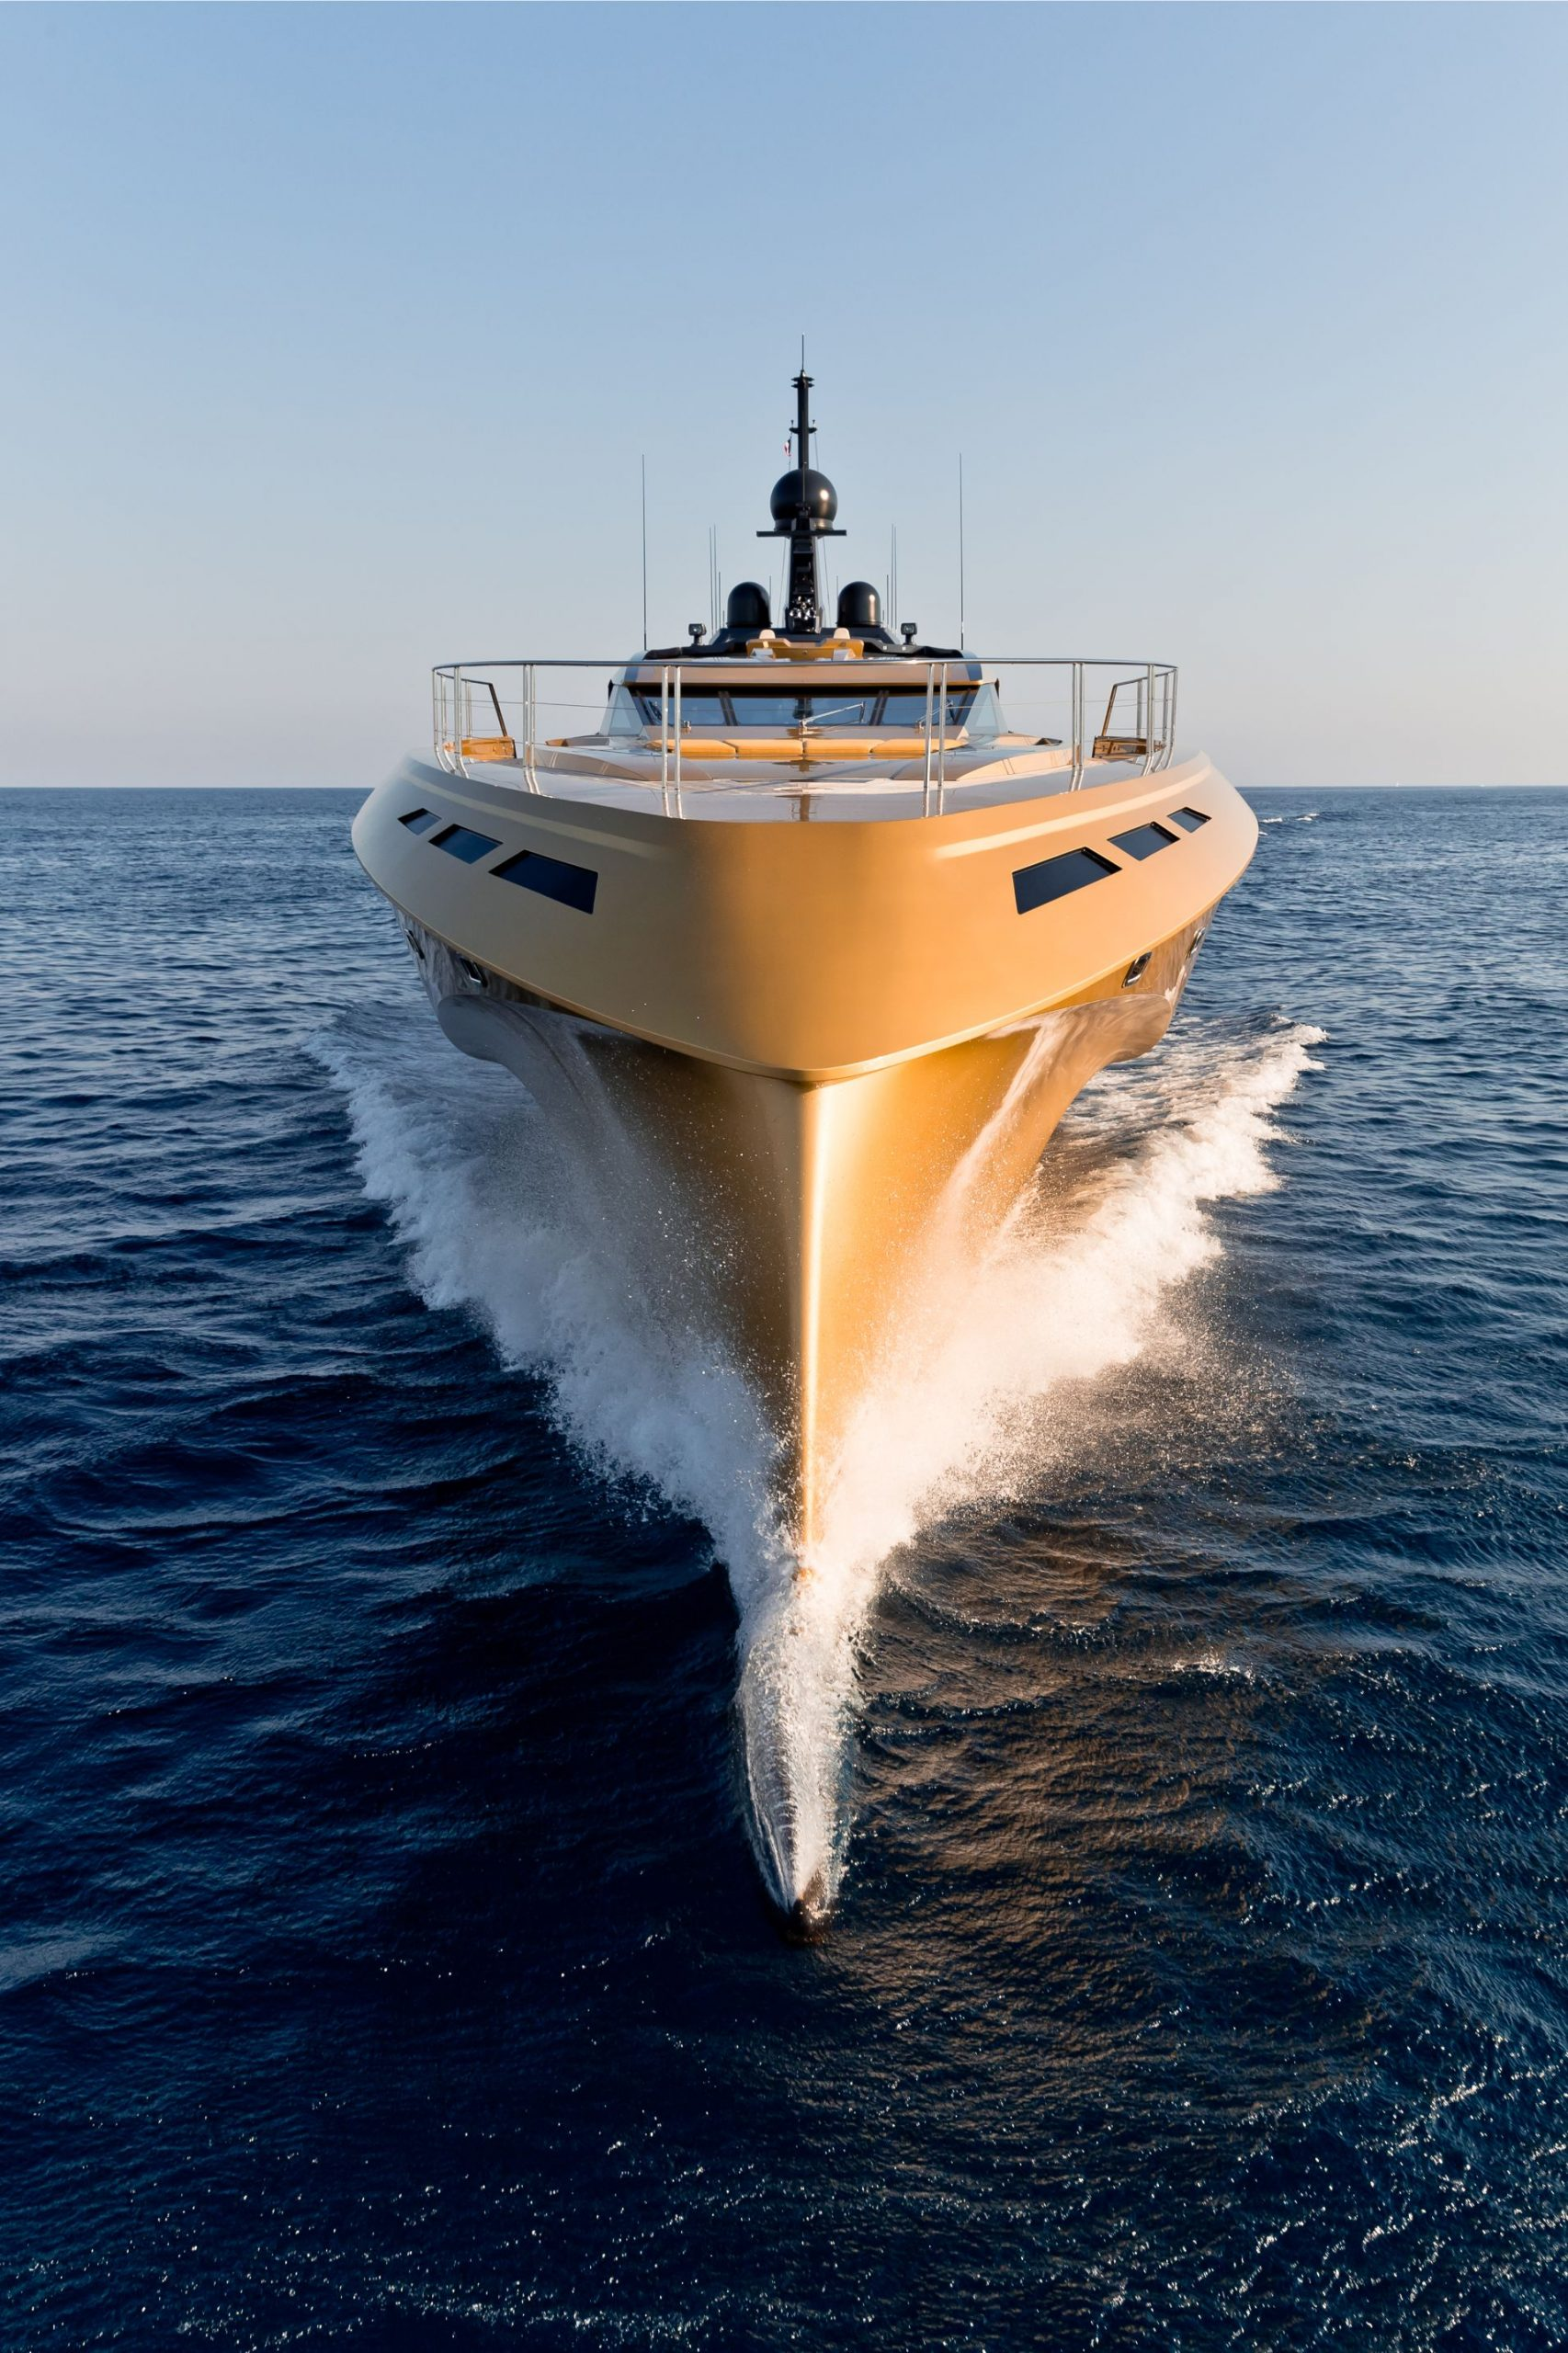 Bow of superyacht